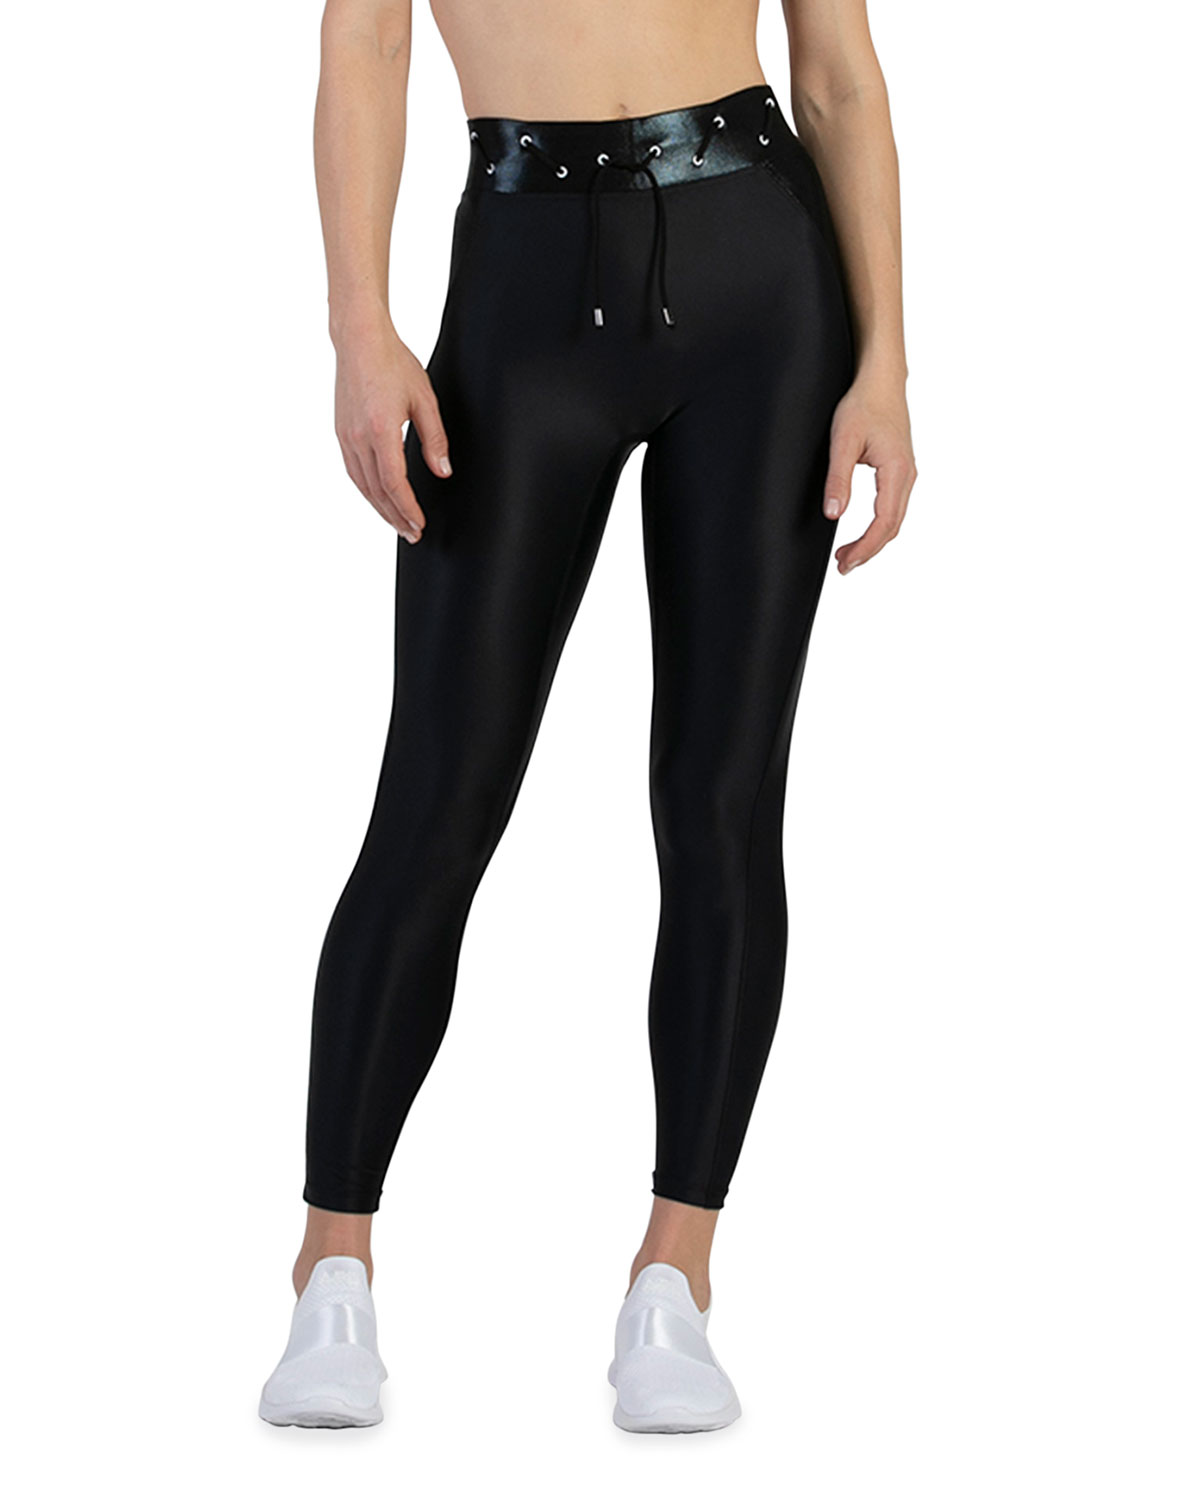 Laced Active Leggings